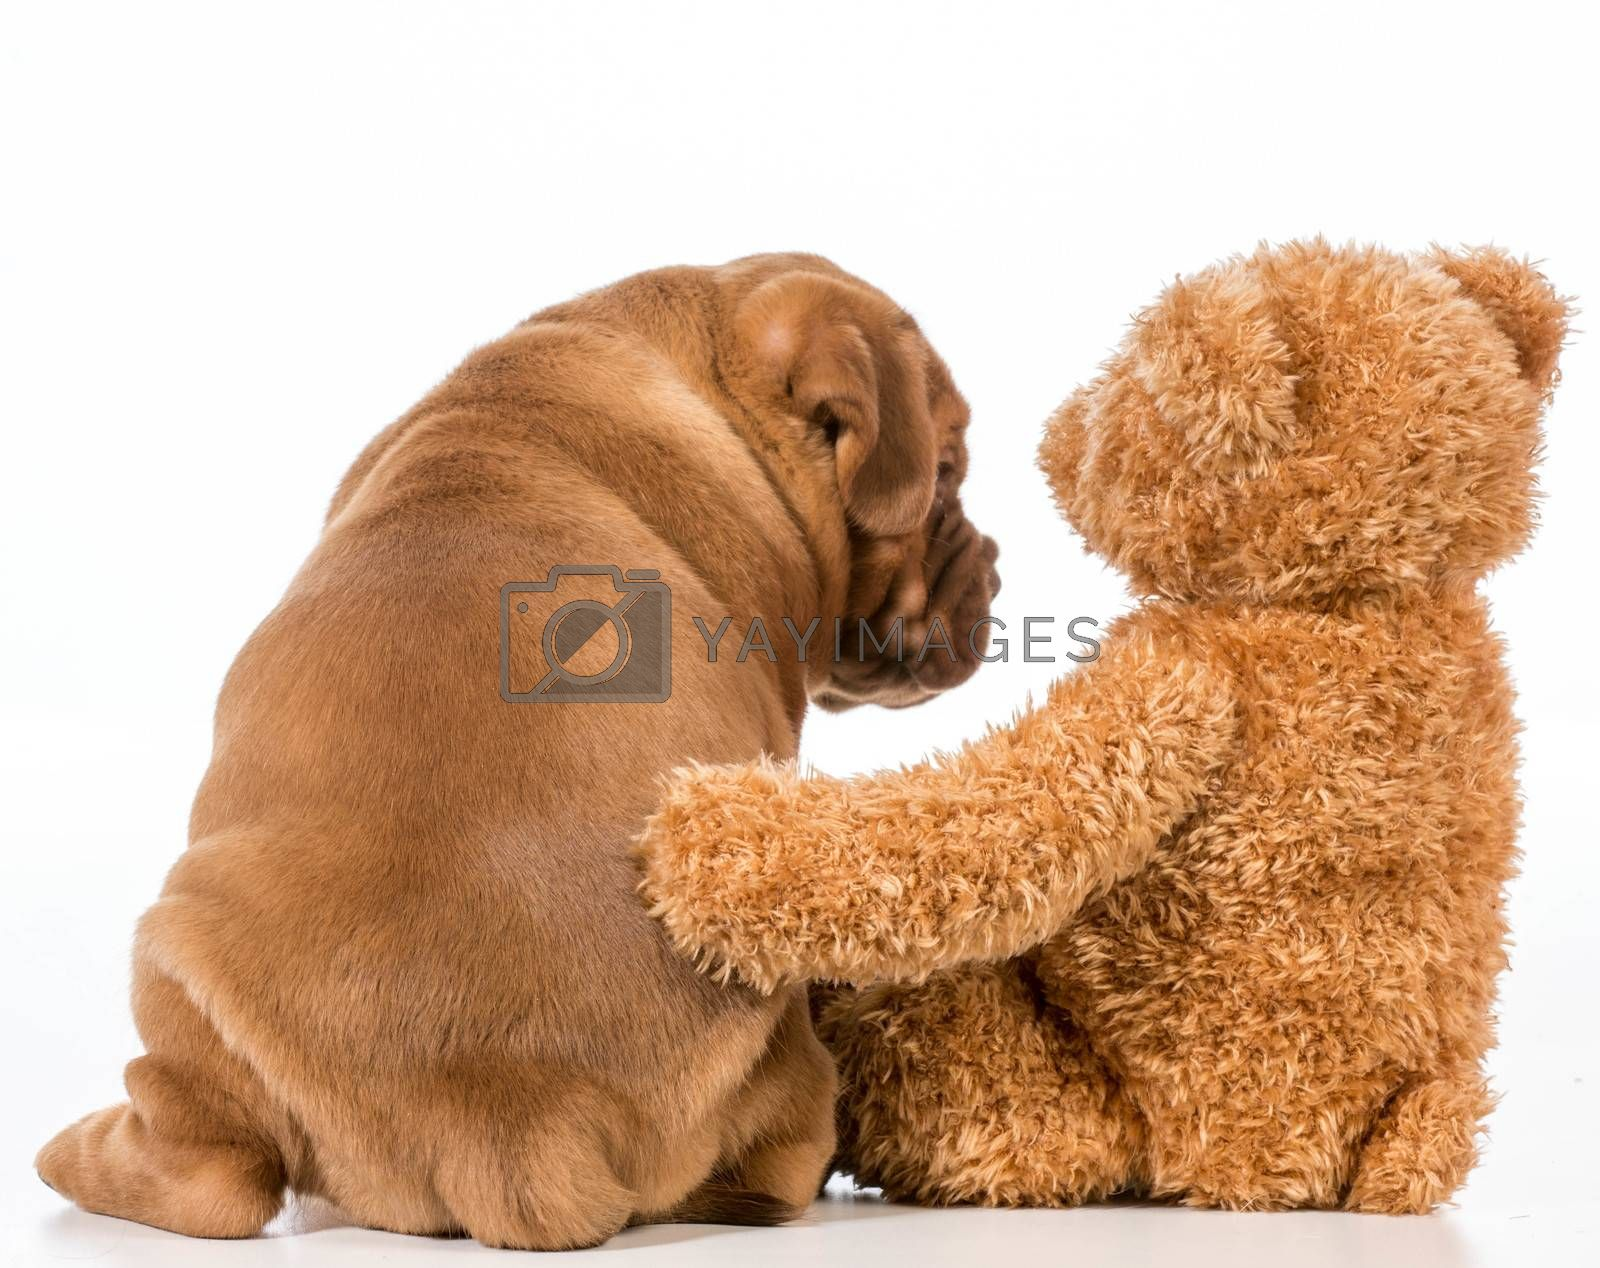 Royalty free image of best friends by willeecole123